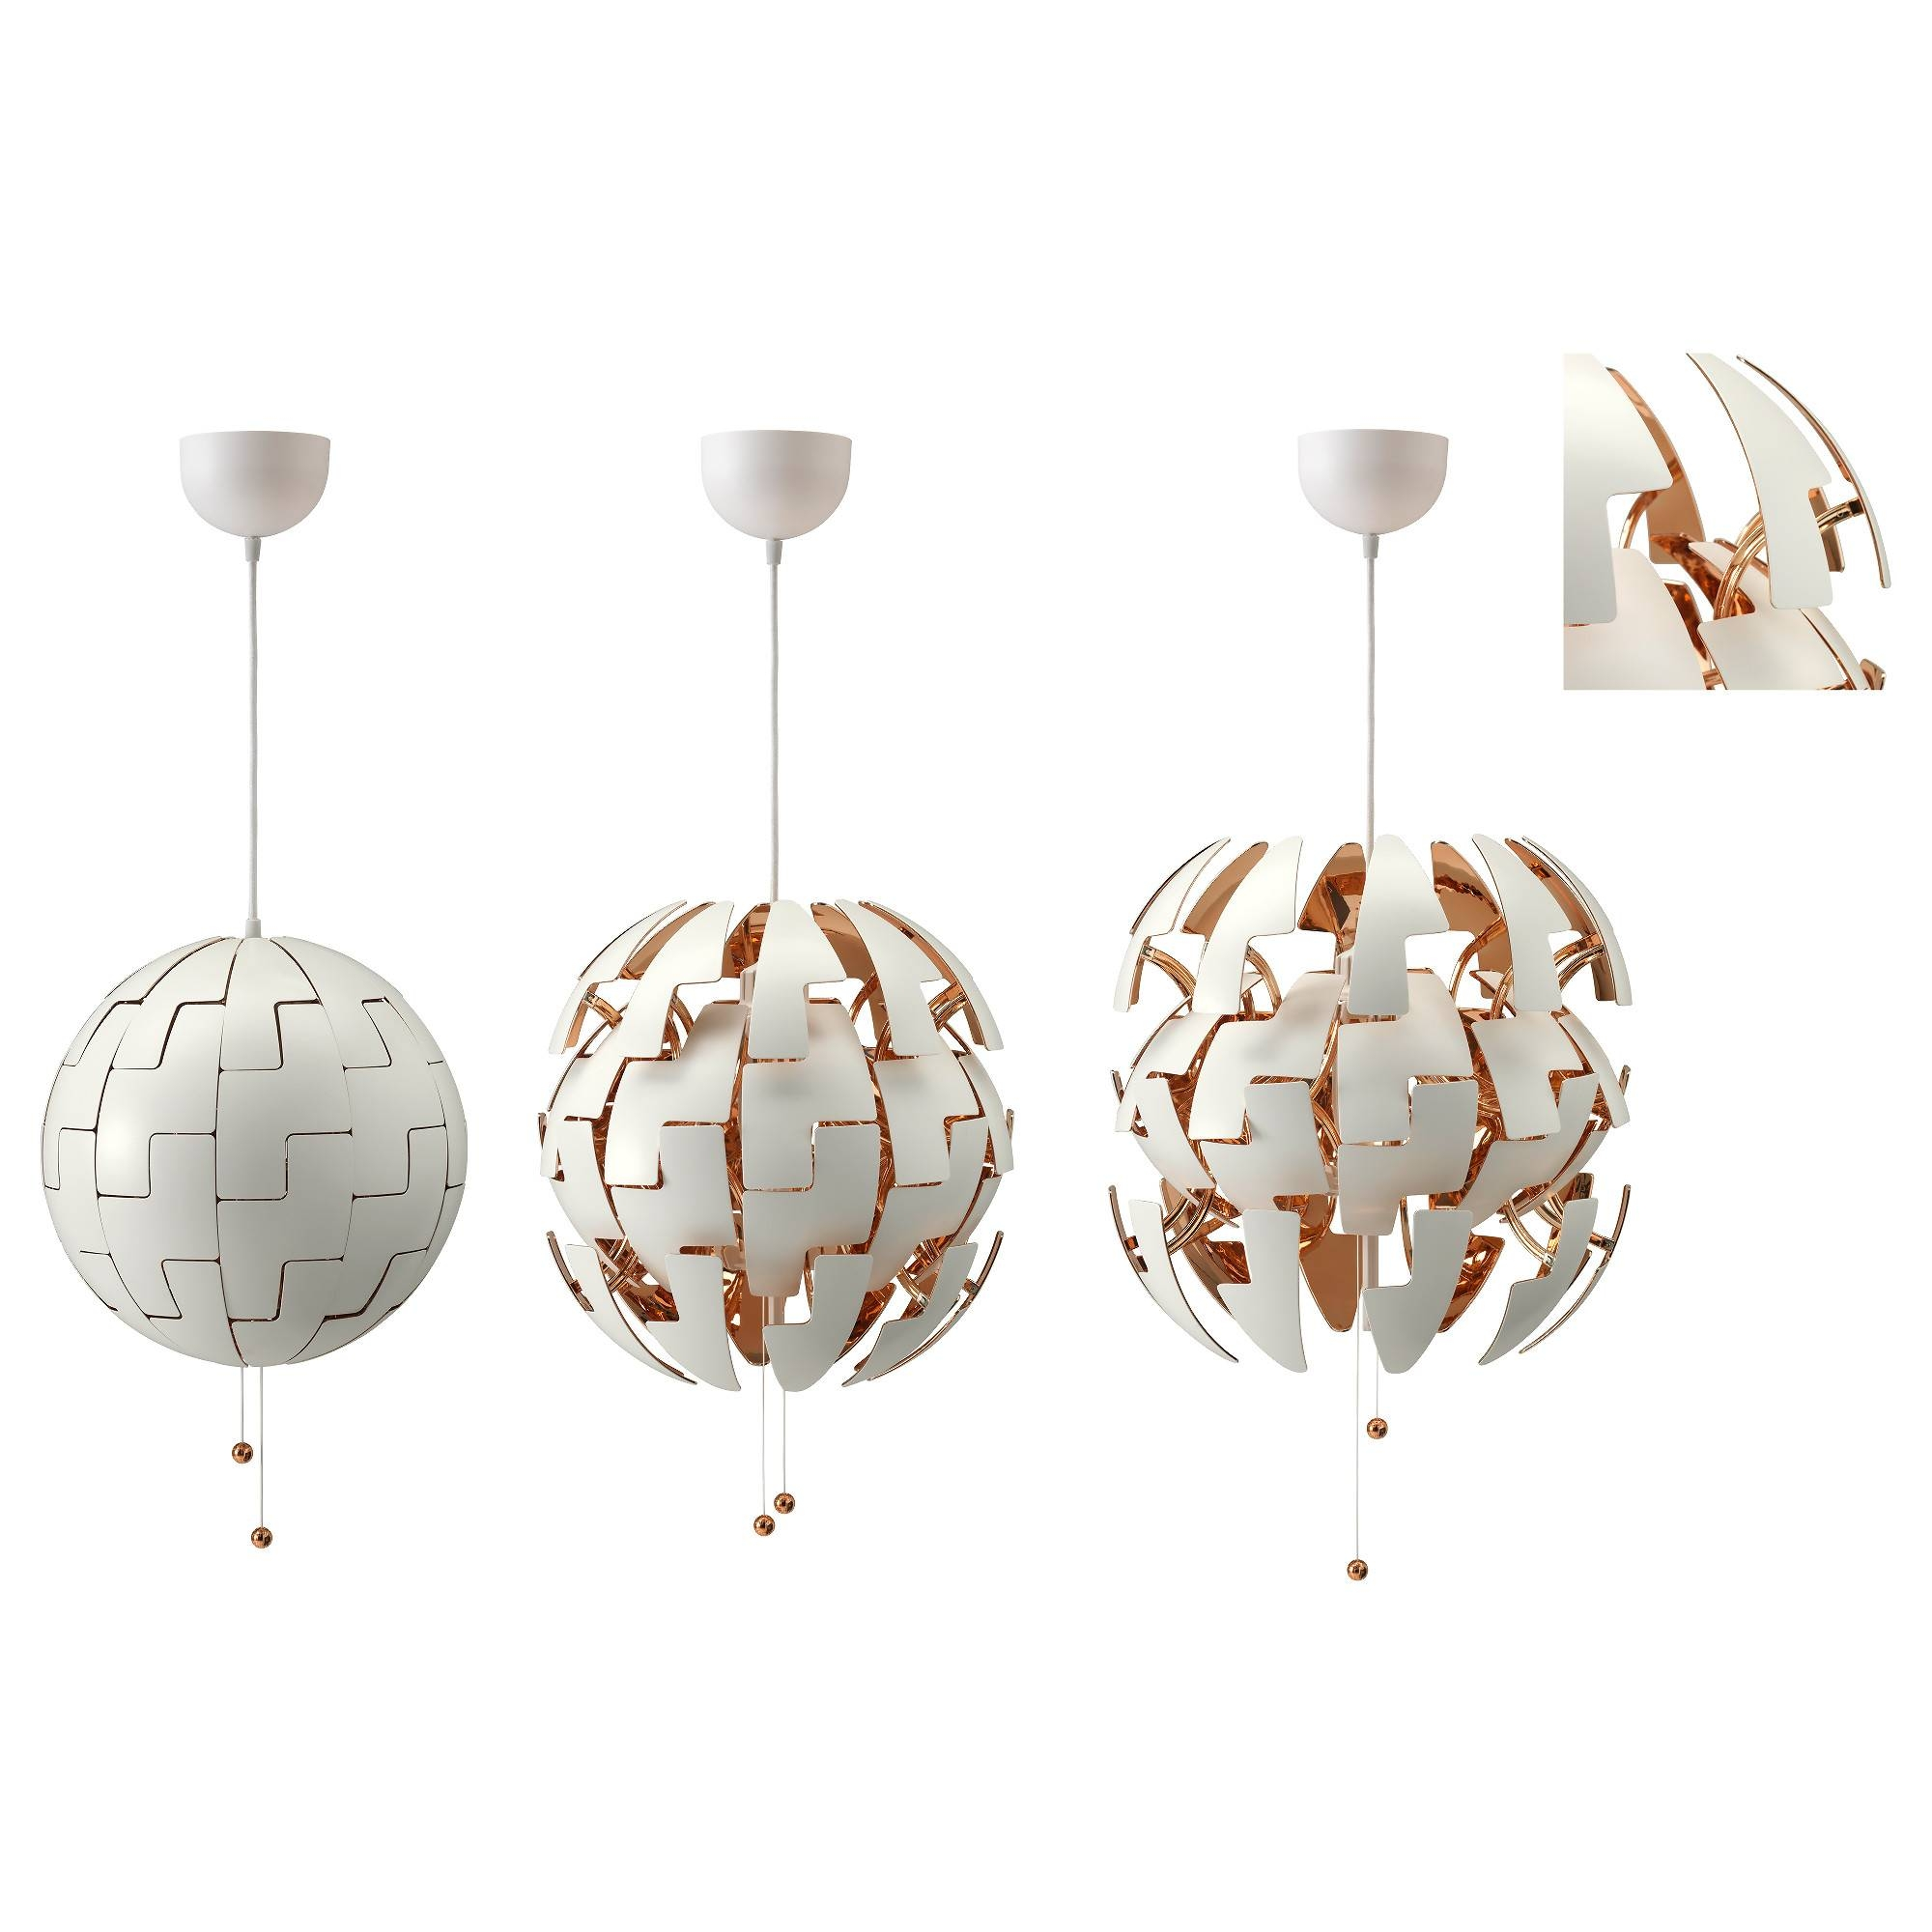 Ikea Ps 2014 Pendant Lamp White/copper Colour – Ikea Intended For Ikea Lighting Pendants (View 6 of 15)